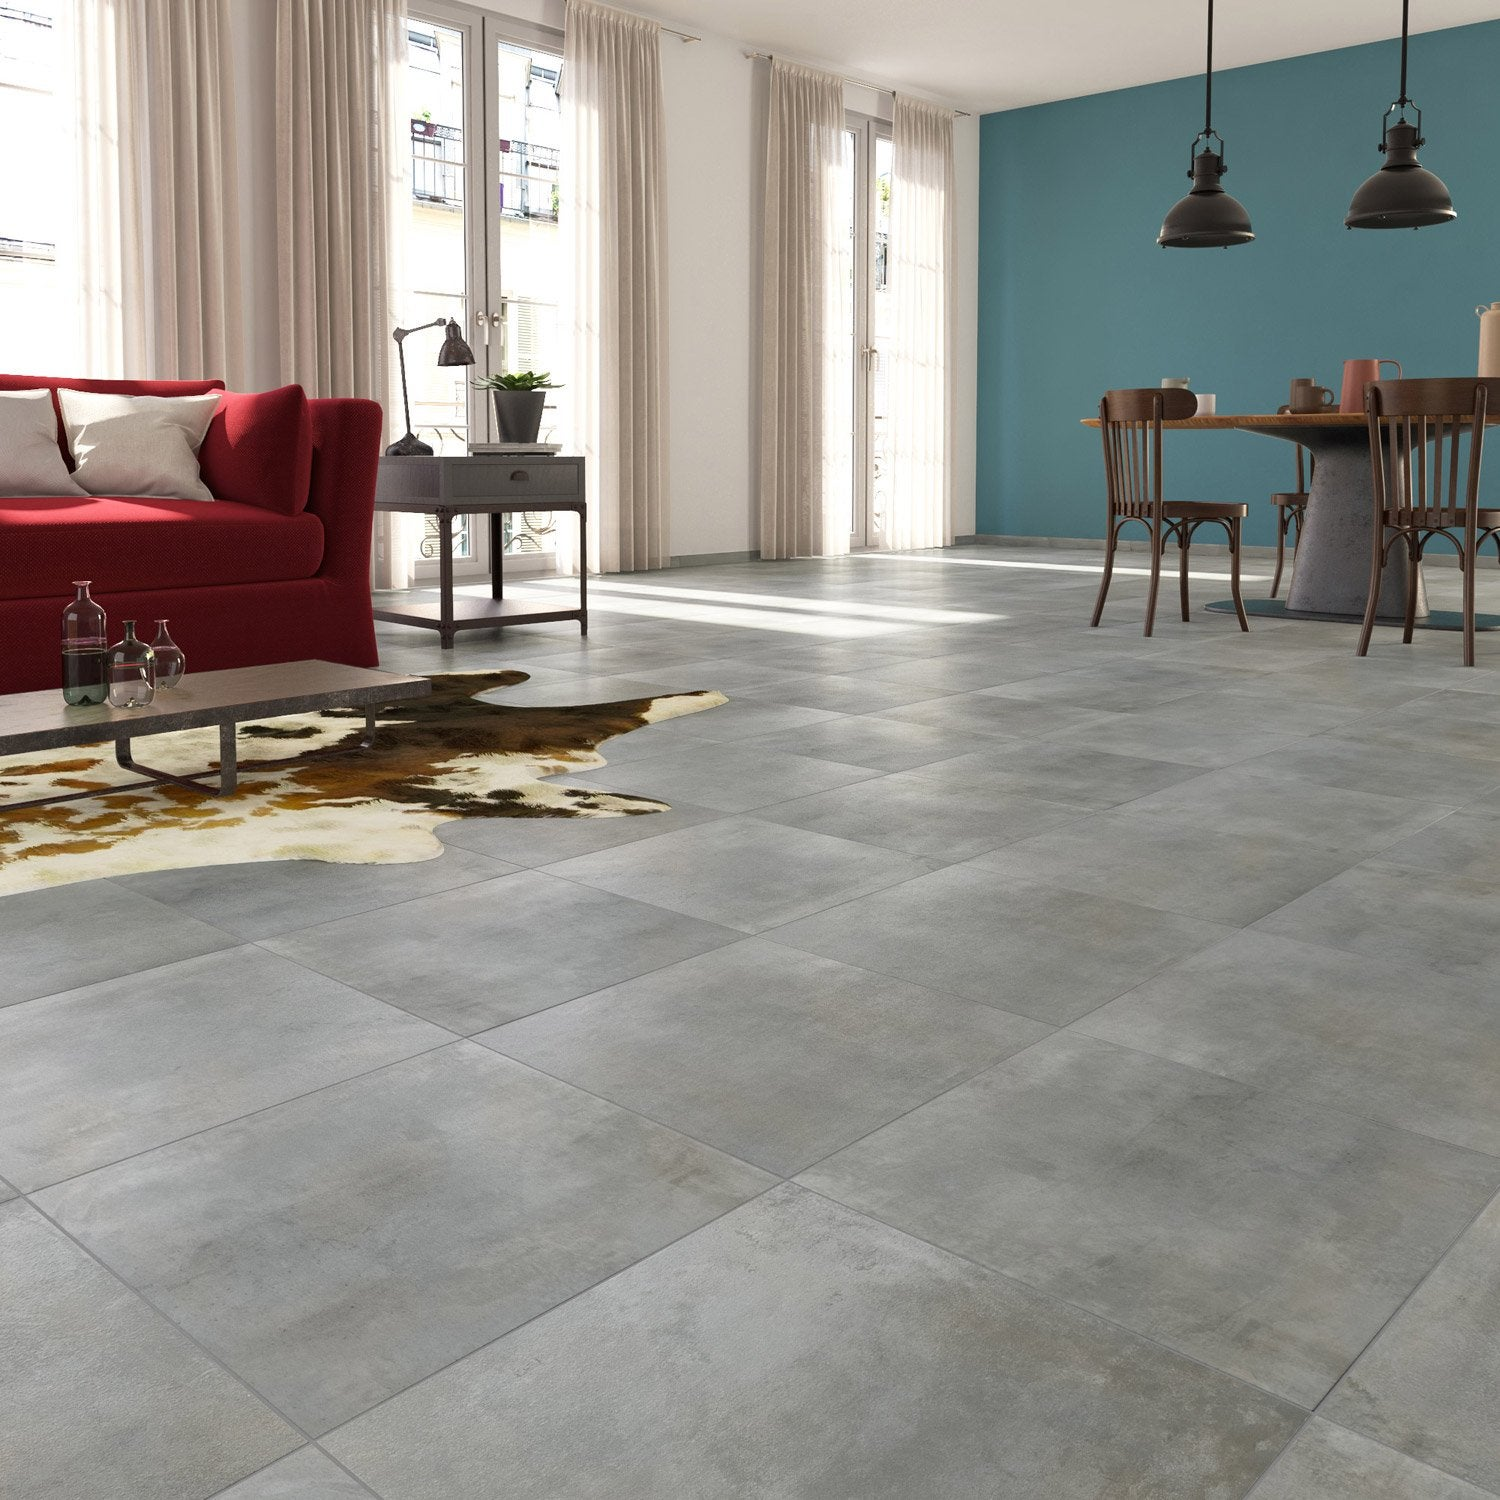 Carrelage Gris Clair Brillant 28 Images Carrelage Gris